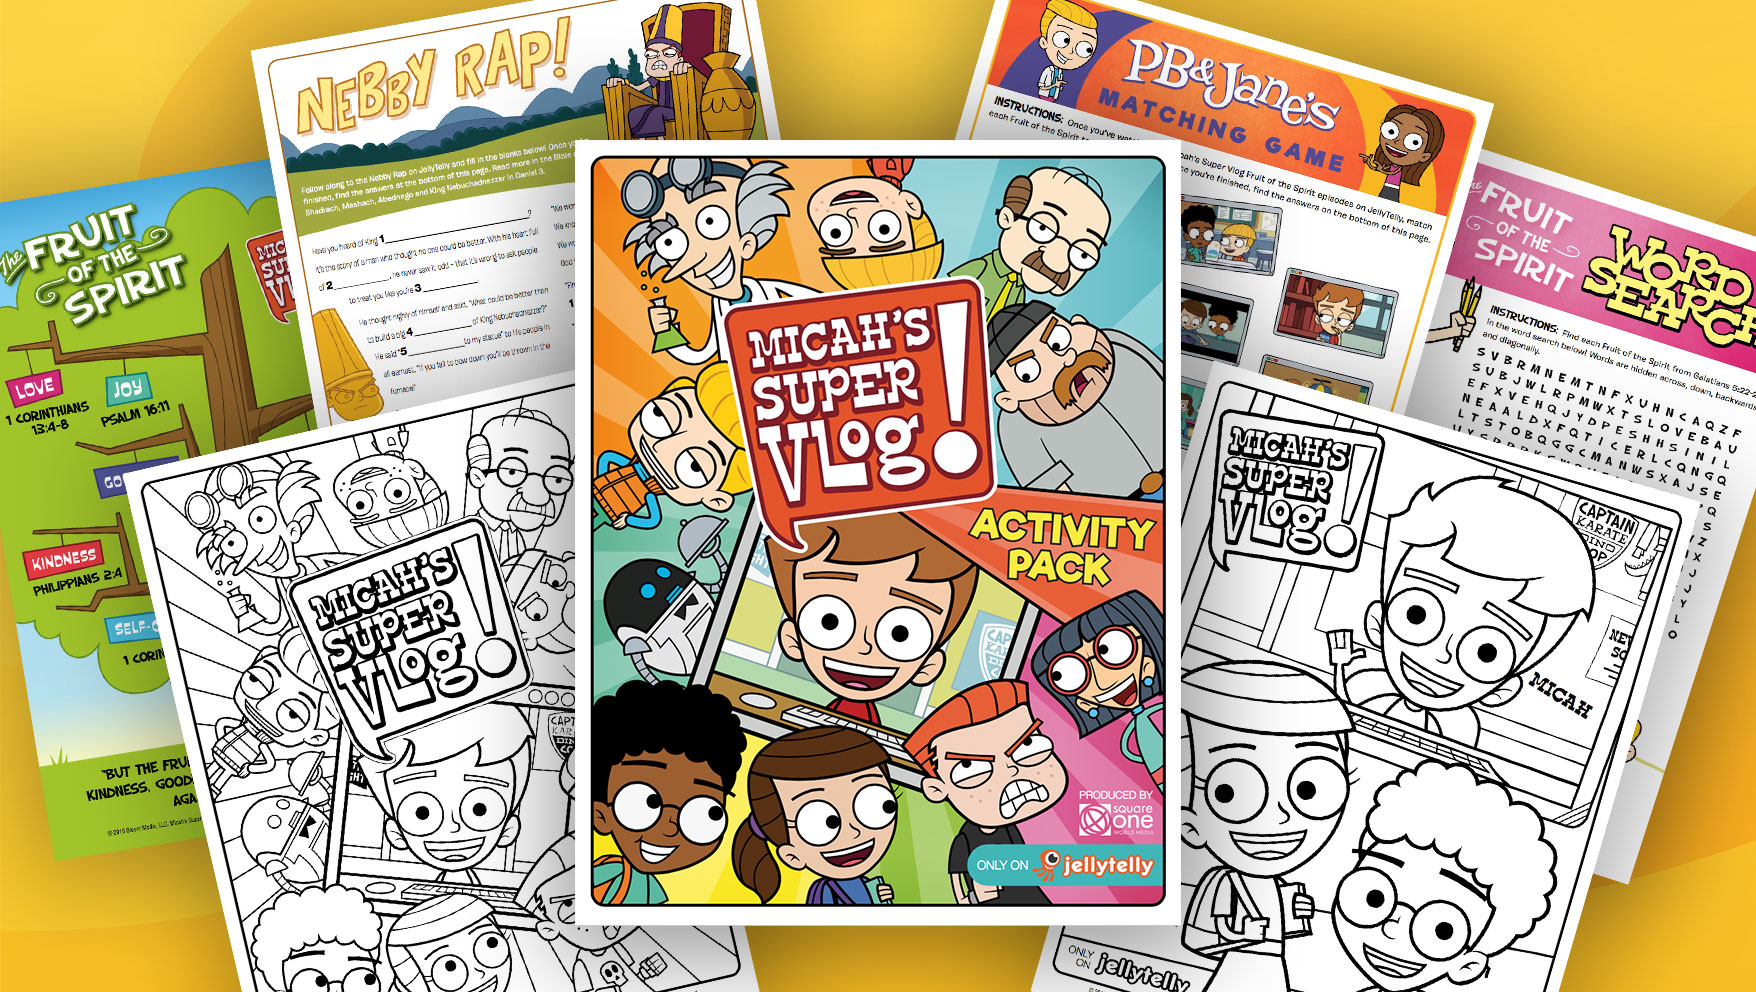 Of Micahs Super Vlog On JellyTelly Weve Made A Brand New Activity Pack Follow Along With The Series These Printables